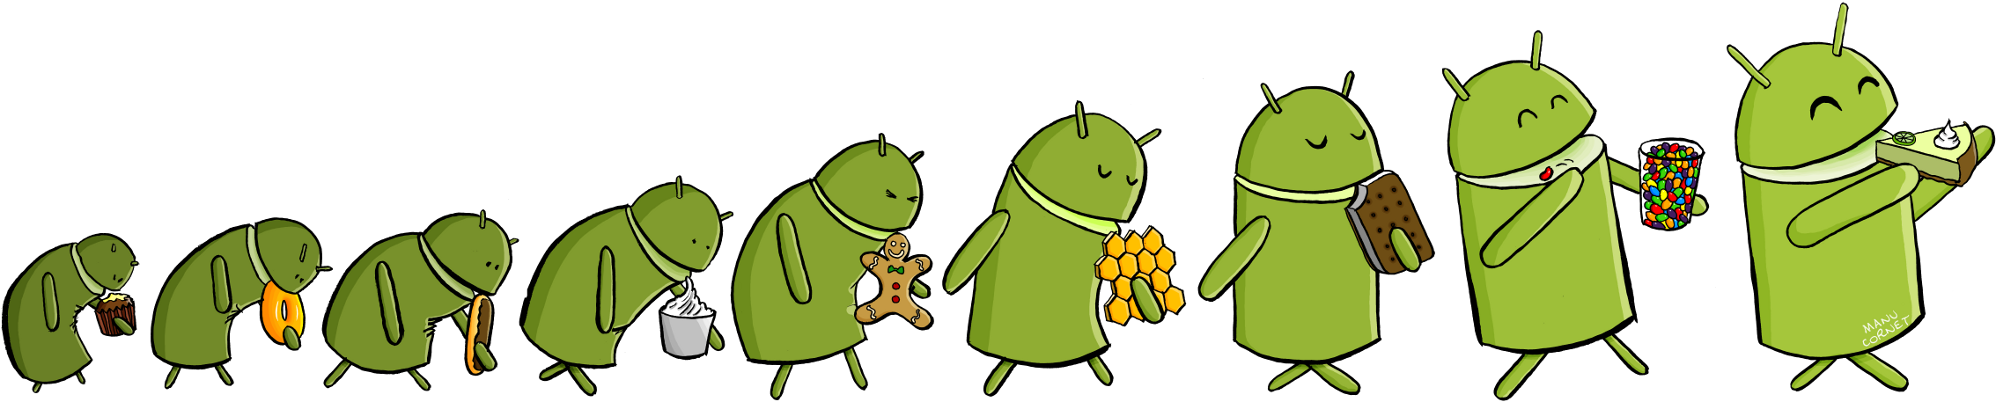 android_evolution_line